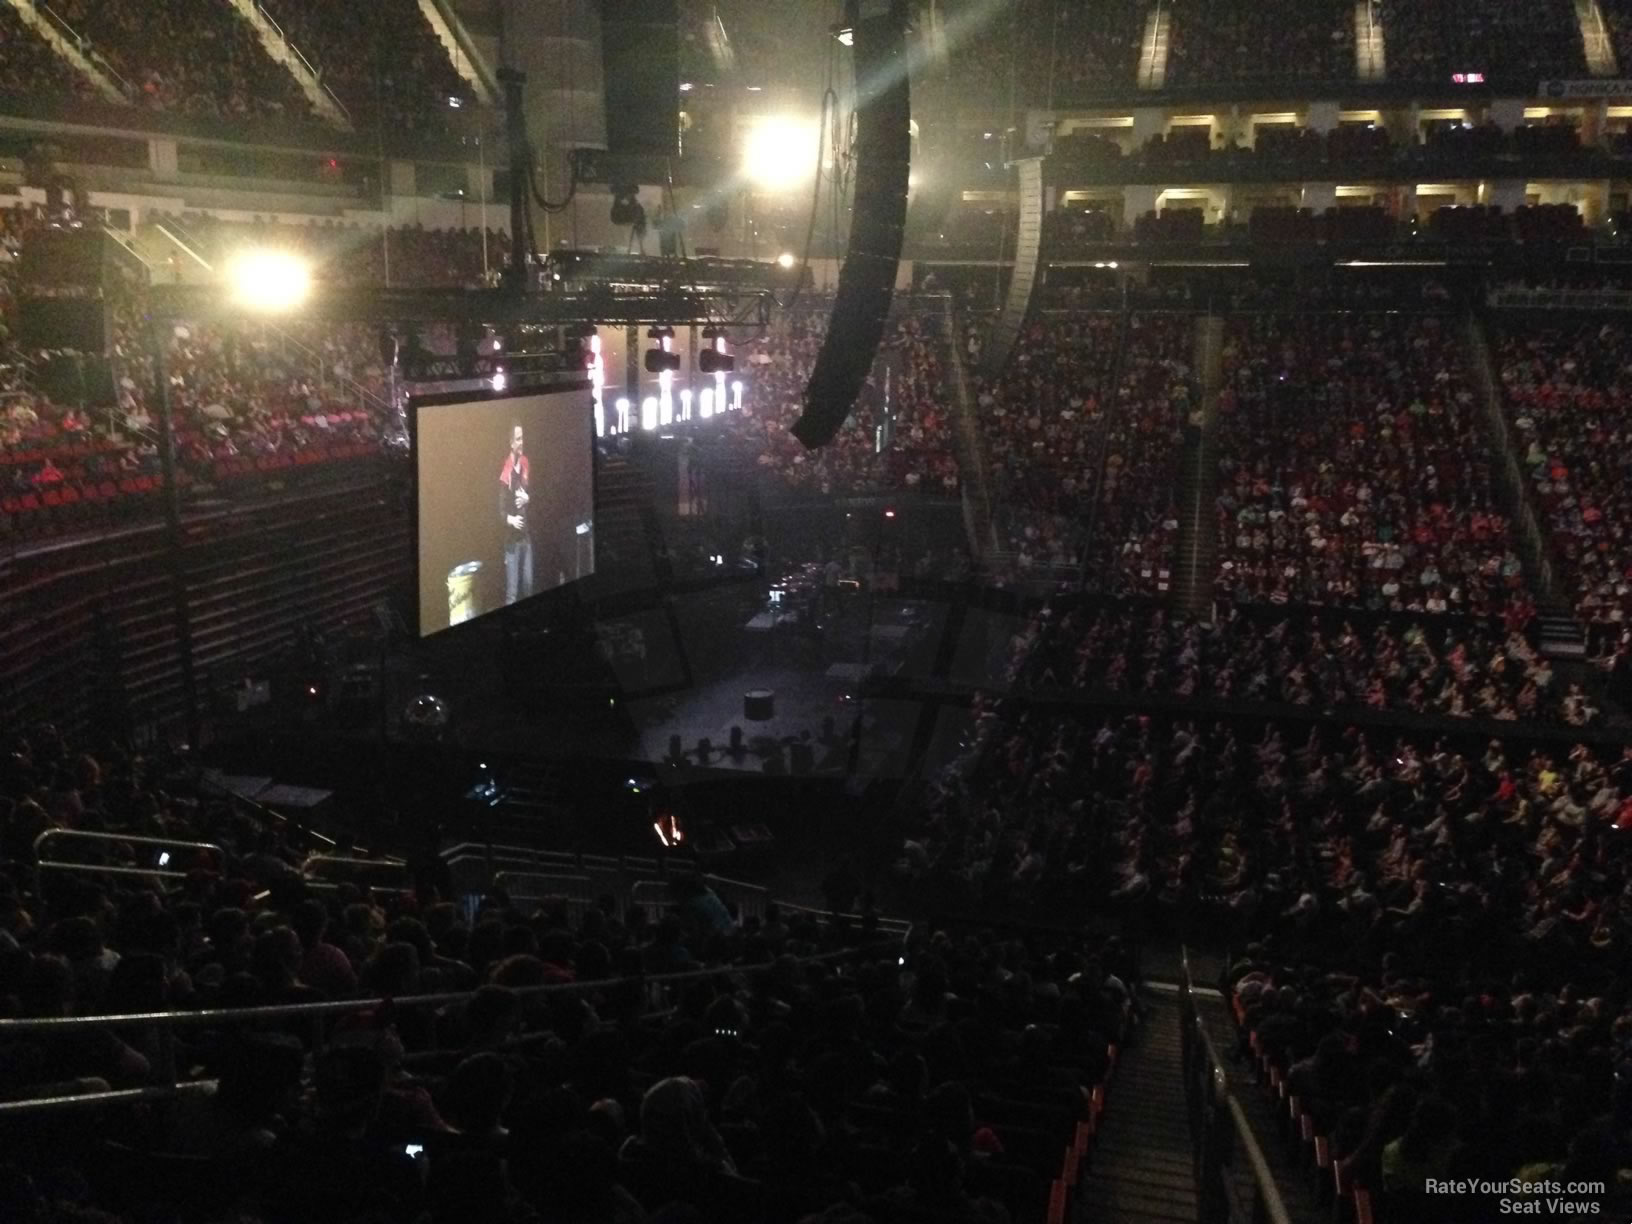 Toyota Center Section 122 Concert Seating Rateyourseats Com